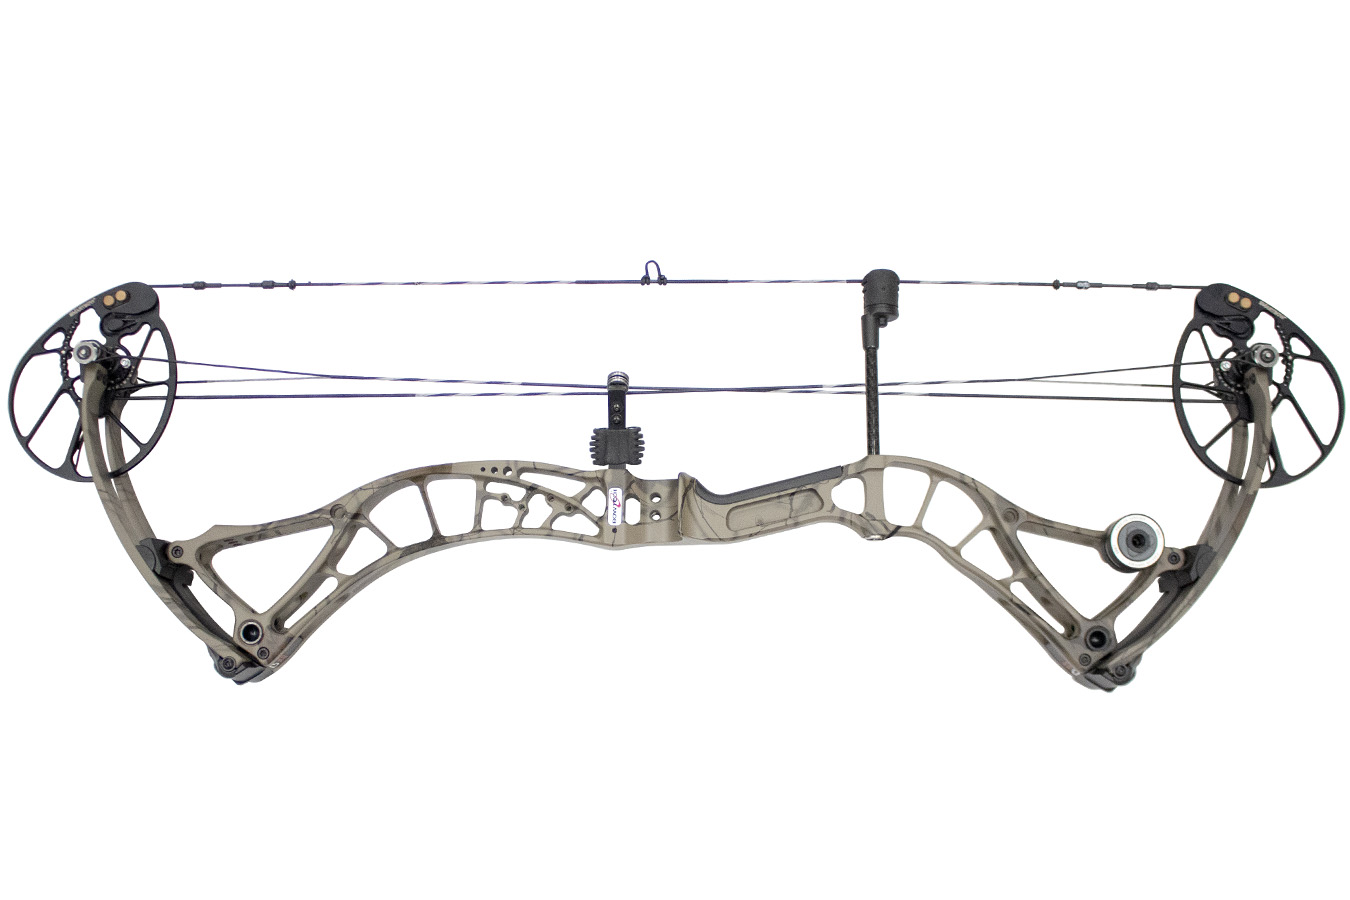 Realm SS Right Handed 70 lbs Country Roots Compound Bow